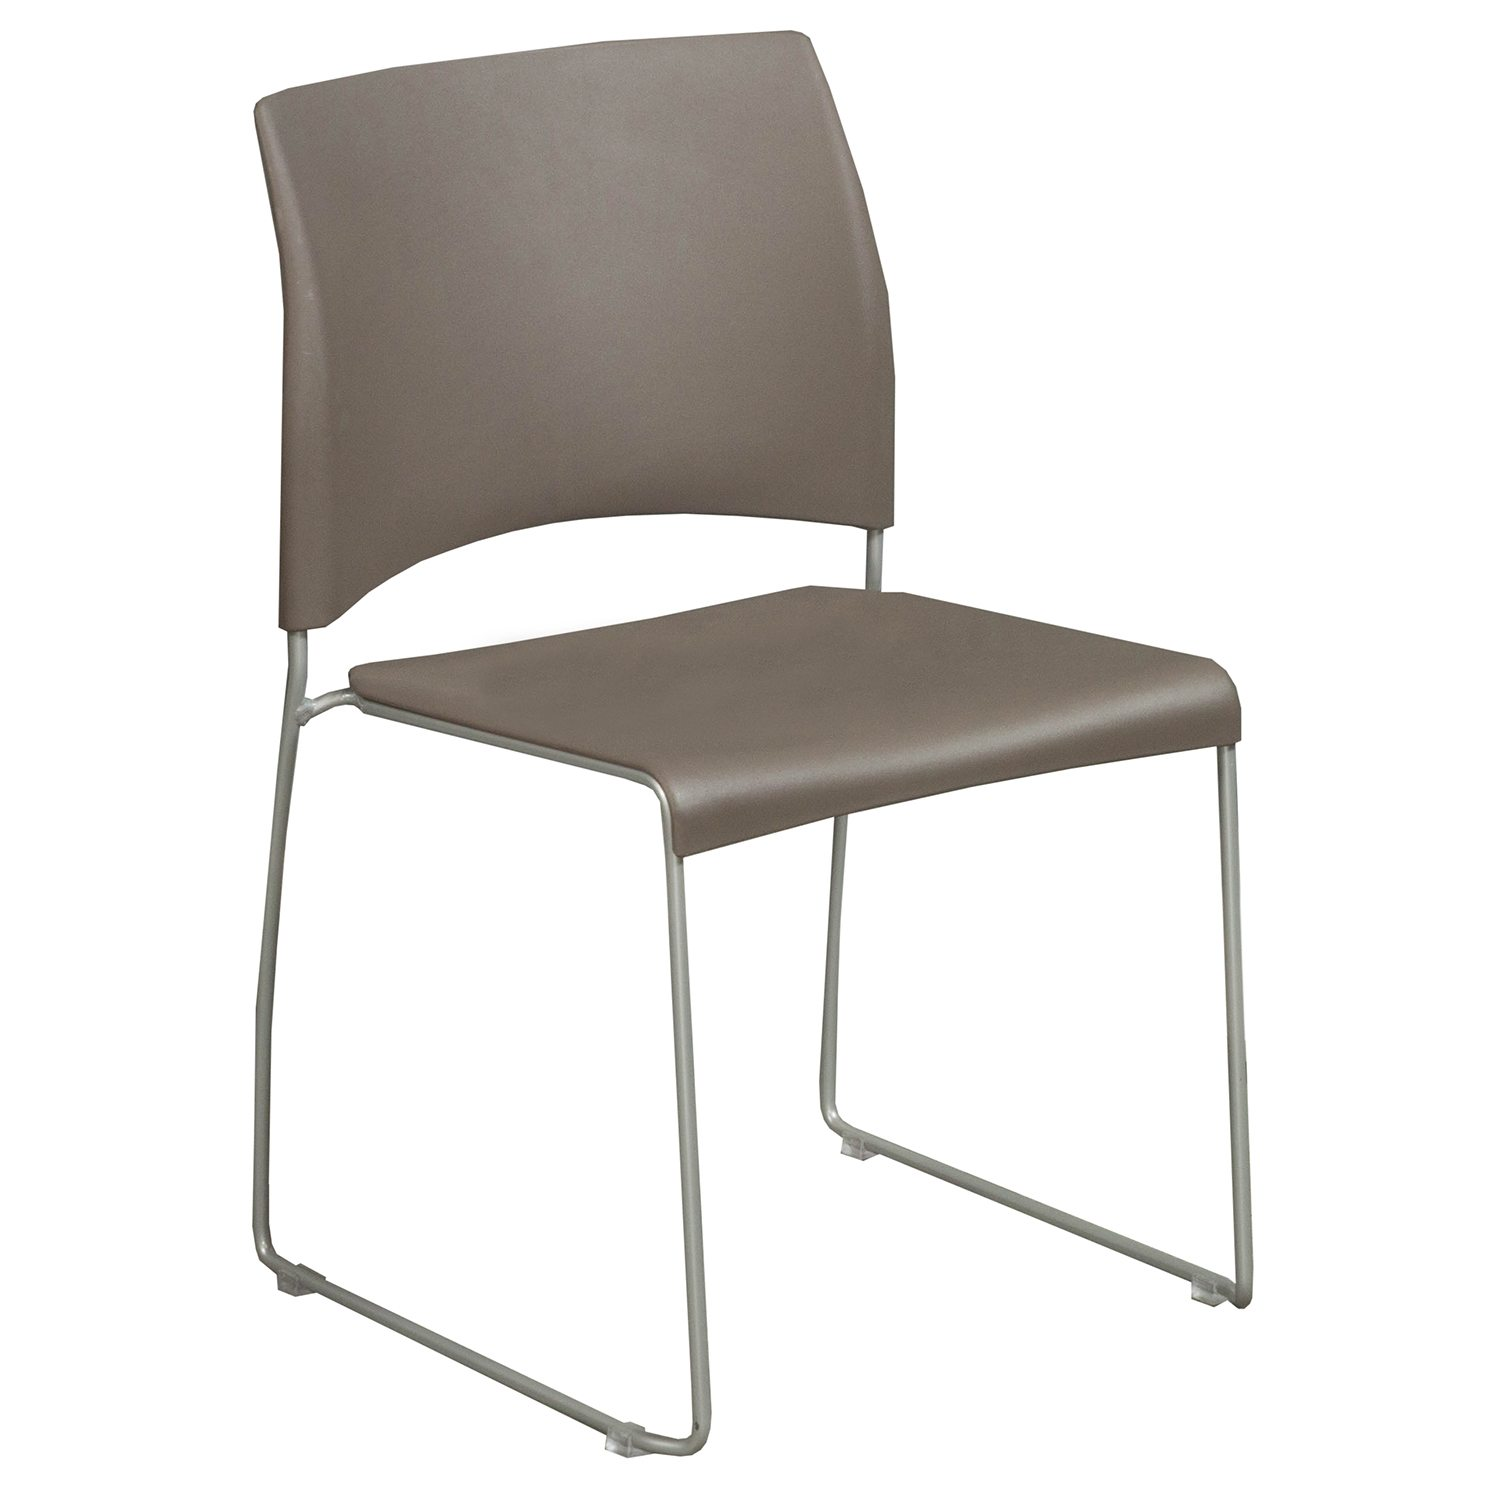 allsteel office chair patio club chairs nimble used stack brownstone national